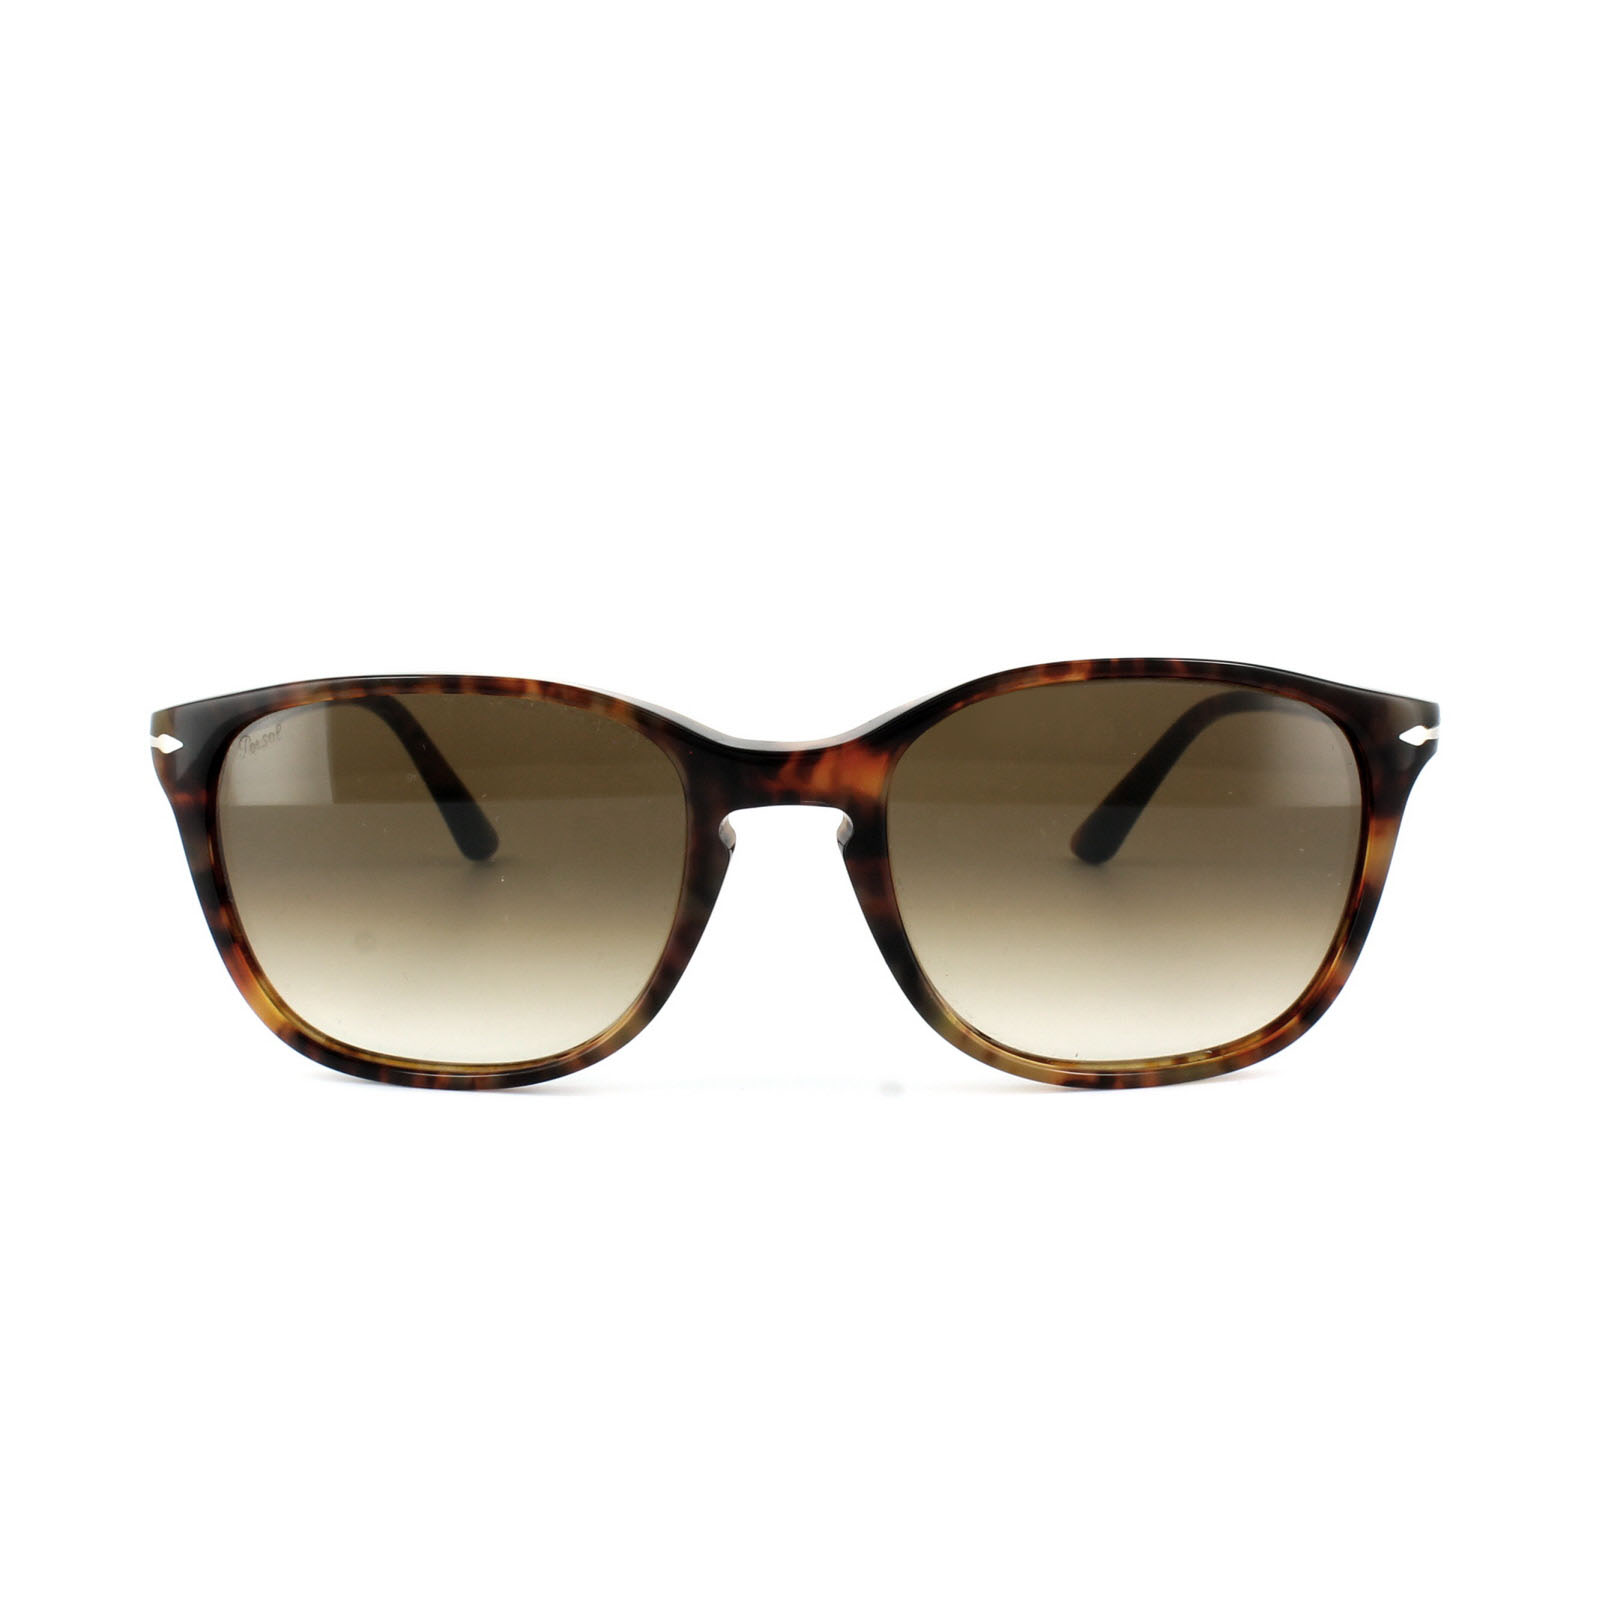 Persol 3133-S 9016/51 Caffe Sonnenbrille ebN0y